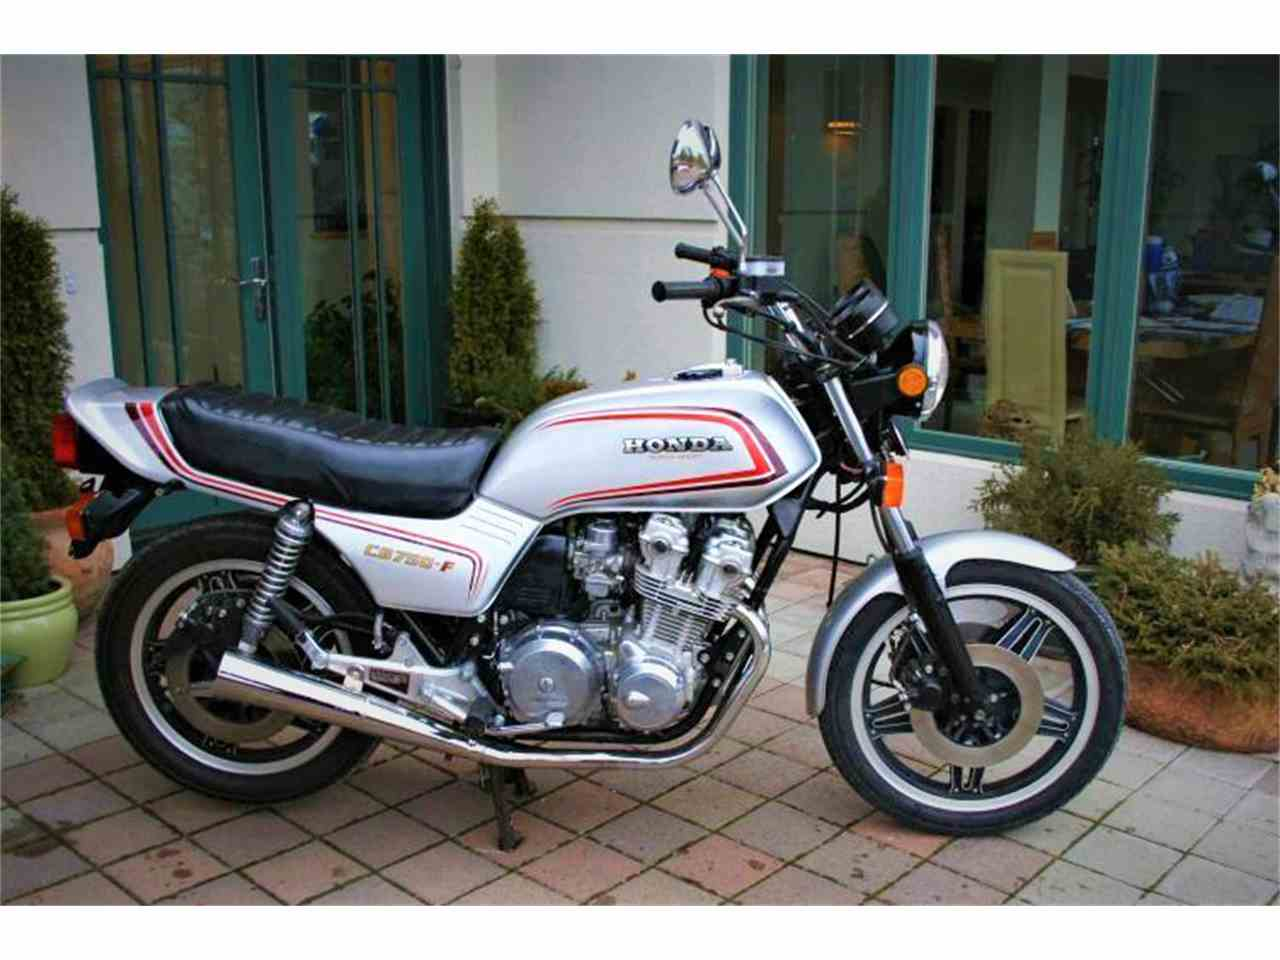 1980 honda motorcycle for sale cc 1048700 for 1980s honda motorcycles